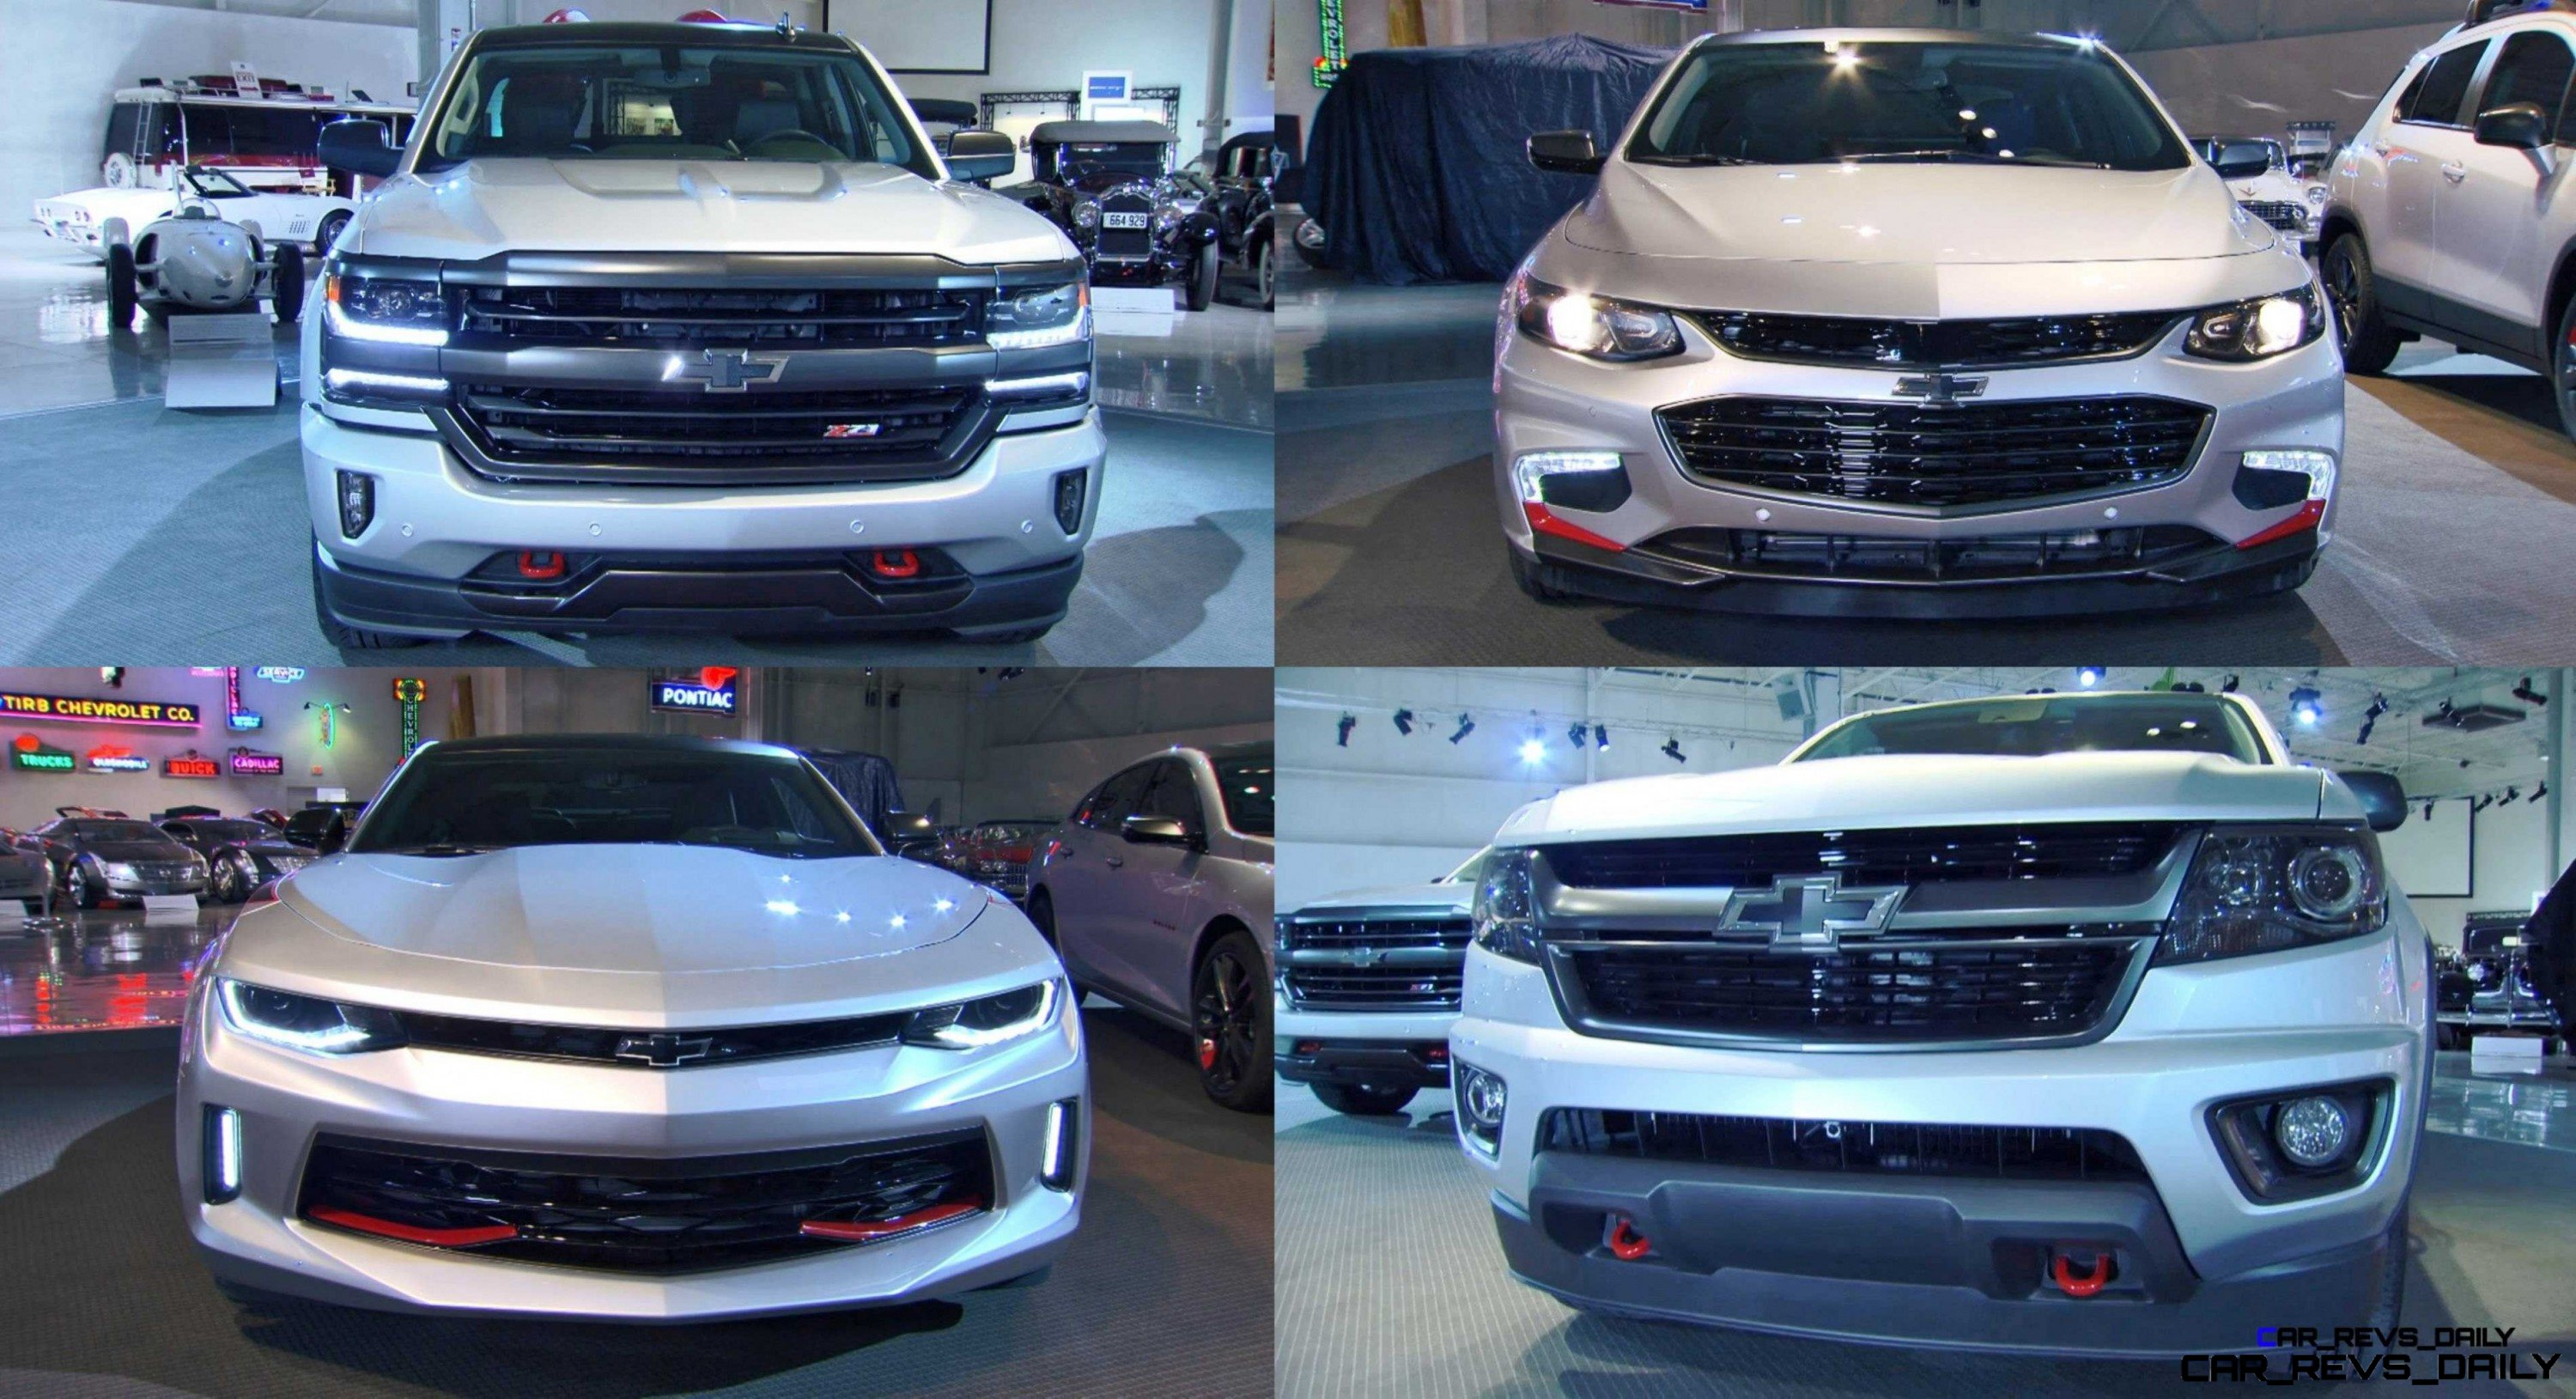 front for sale view side silverado tie pin bow chevrolet readies reaper all an the